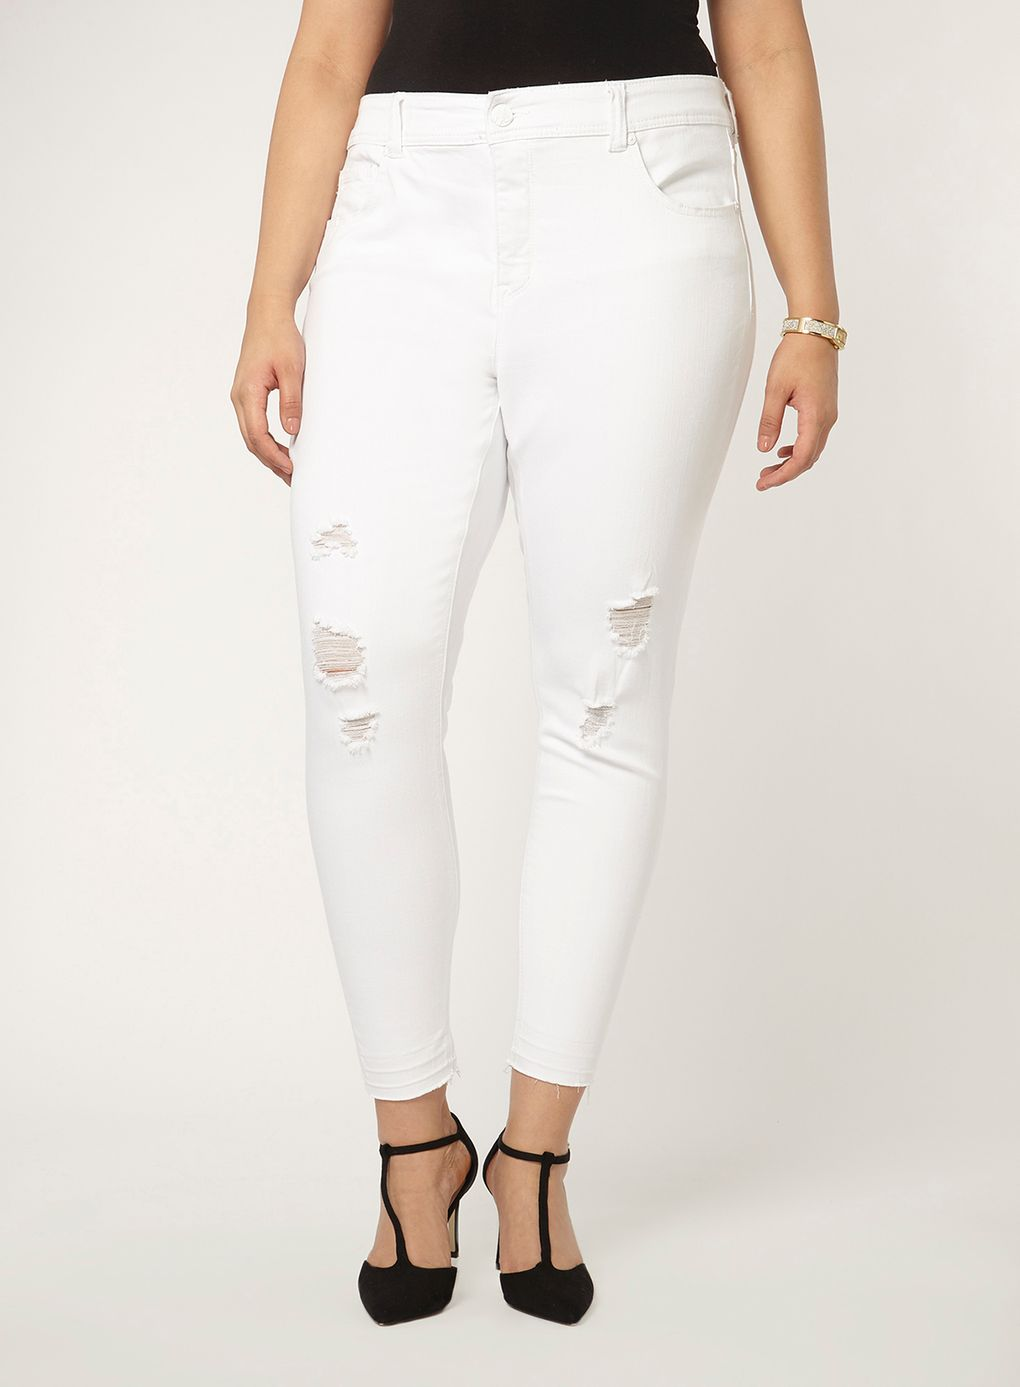 Plus Size White Skinny Jeans - Jeans Am